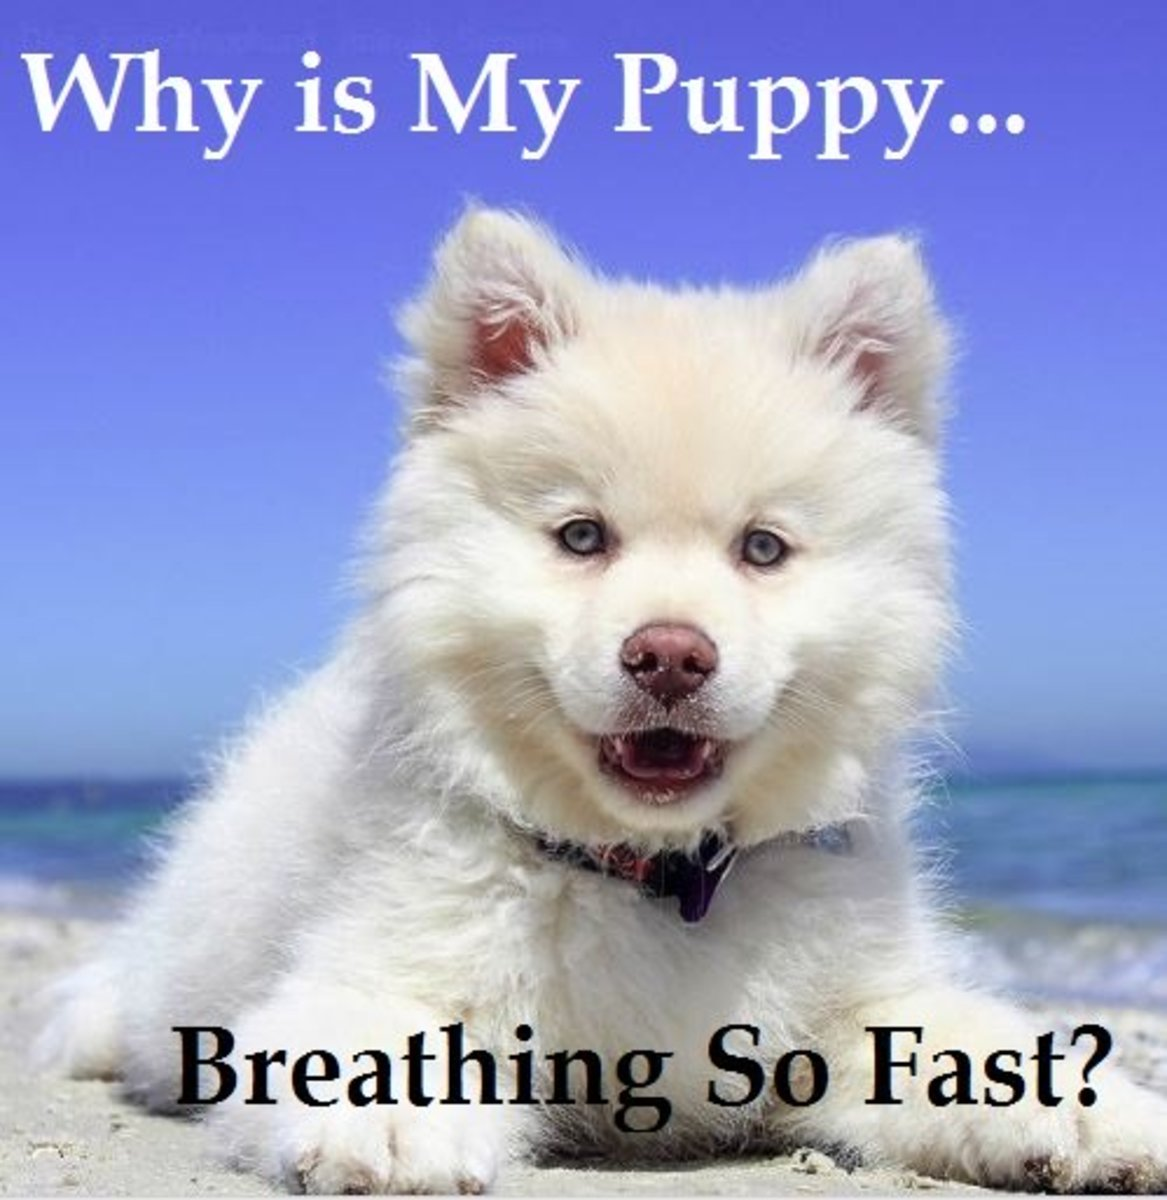 Why Is My Puppy Breathing so Fast?